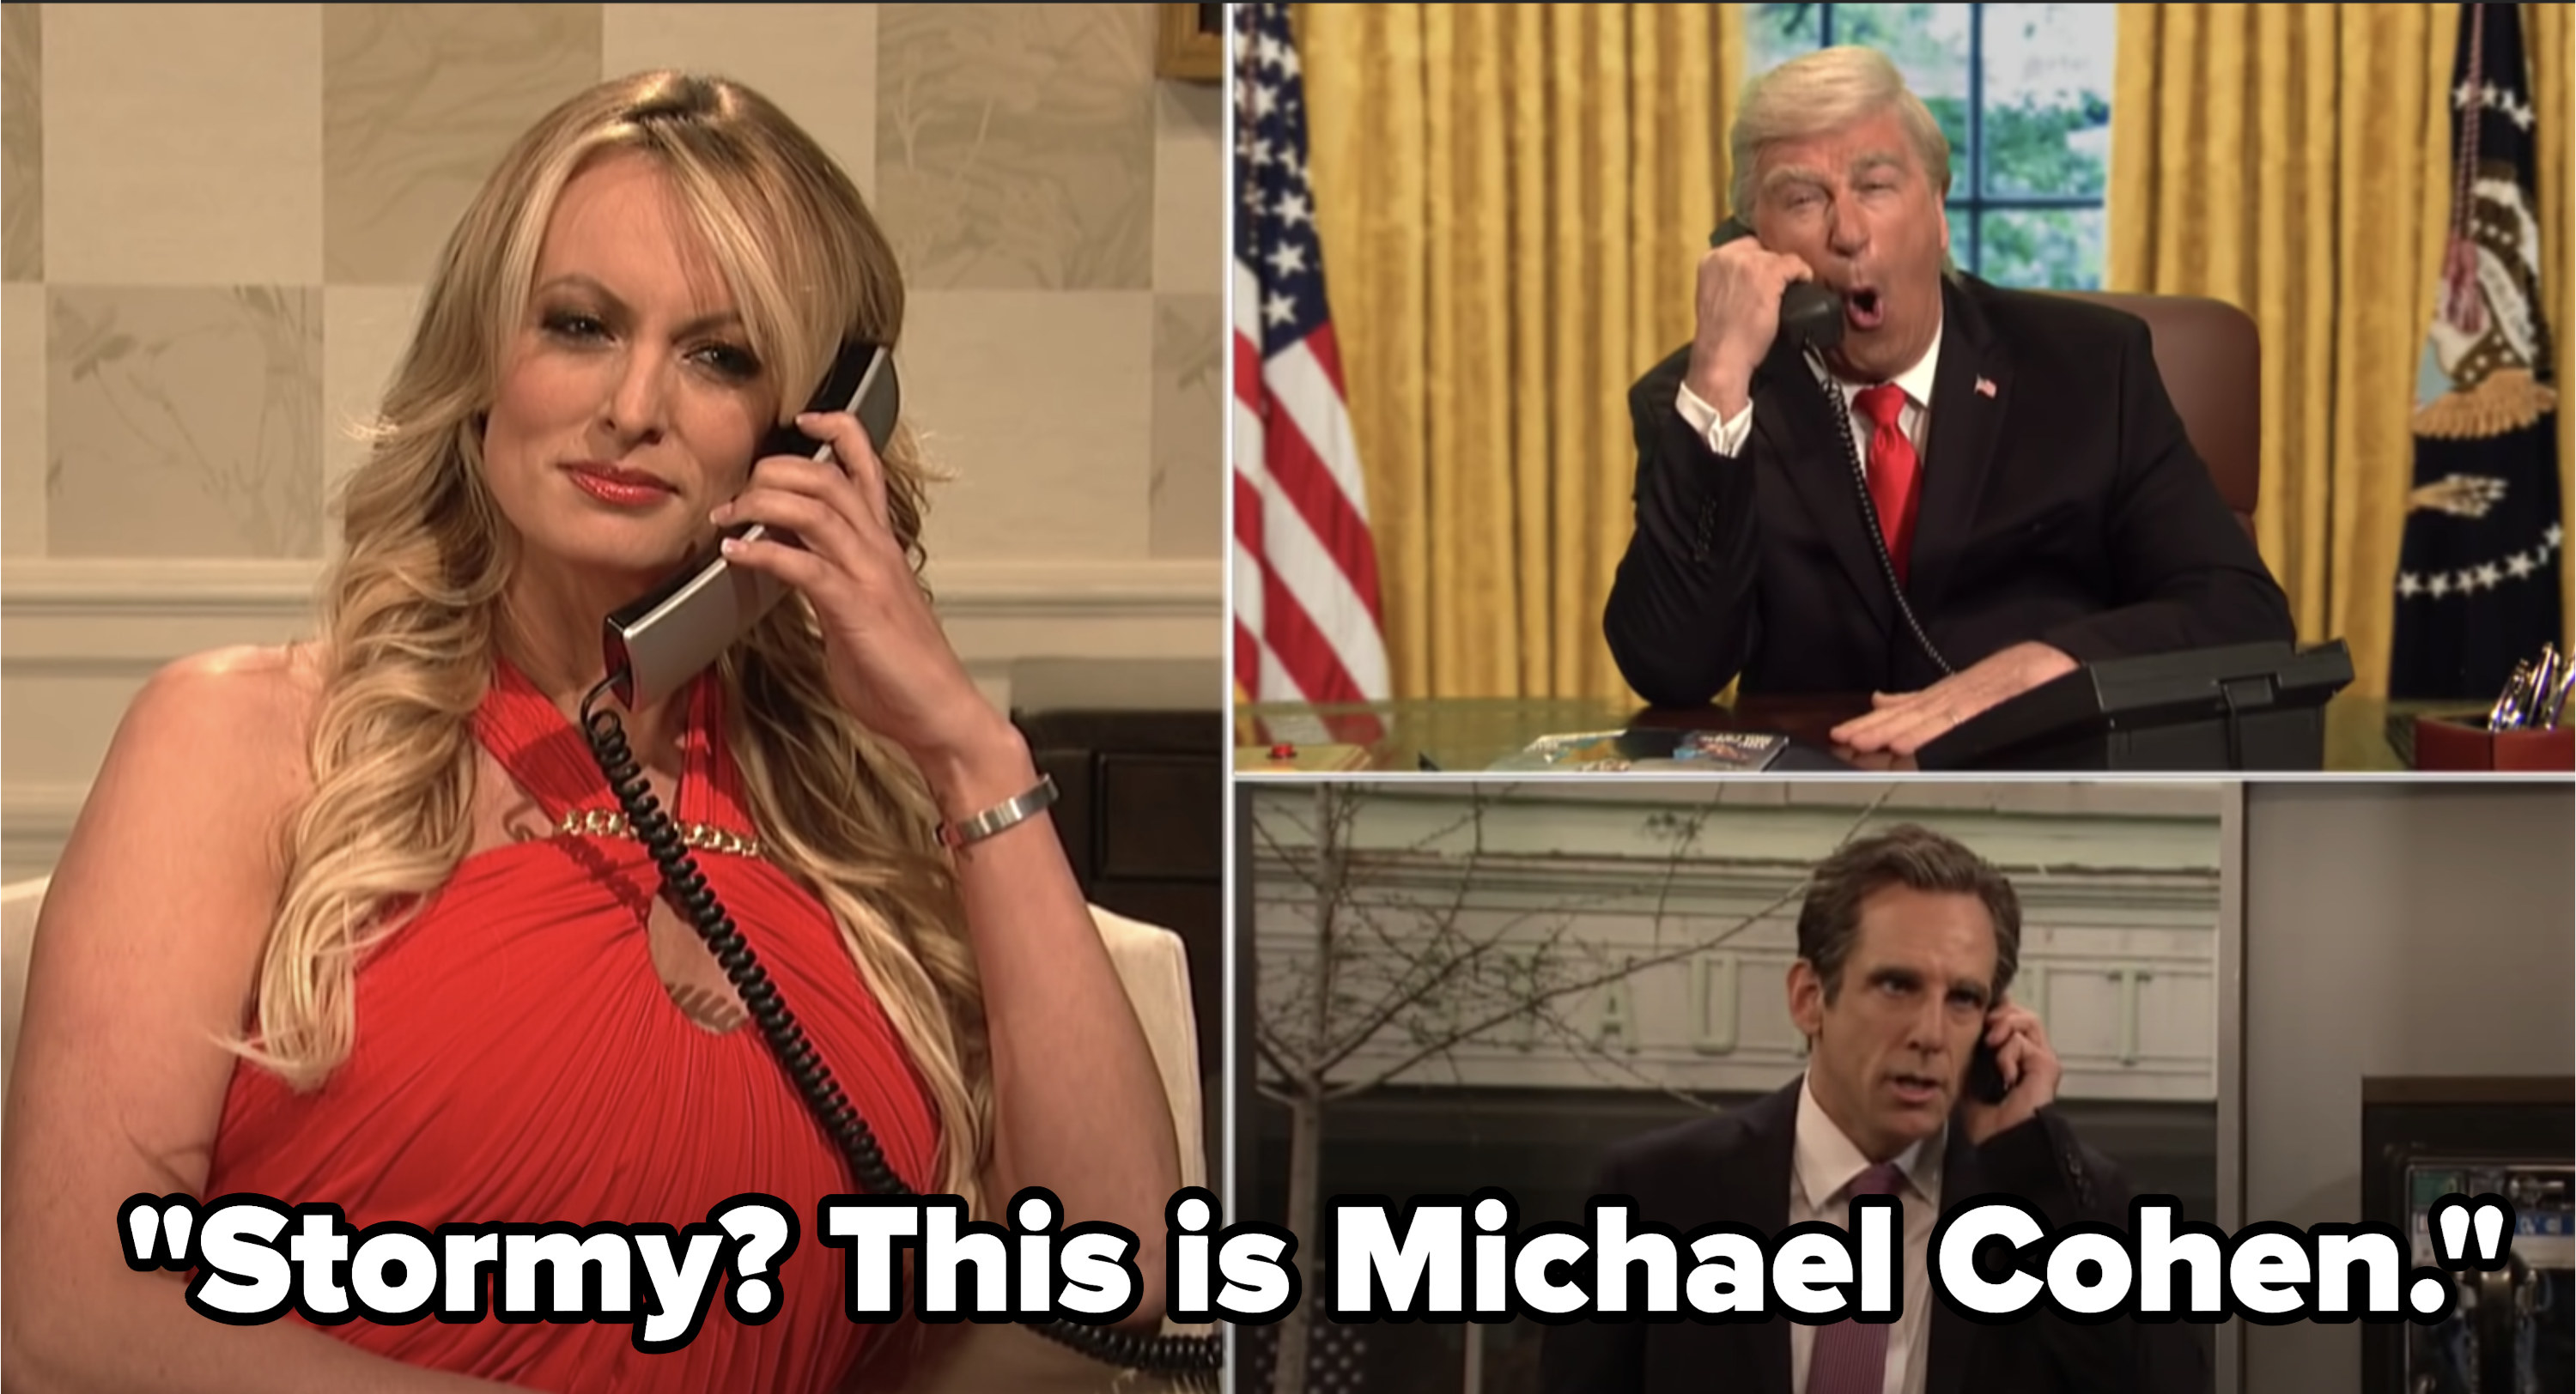 Ben Stiller as Michael Cohen calling Stormy and saying it's Michael Cohen with Alec Baldwin as Trump also on the line